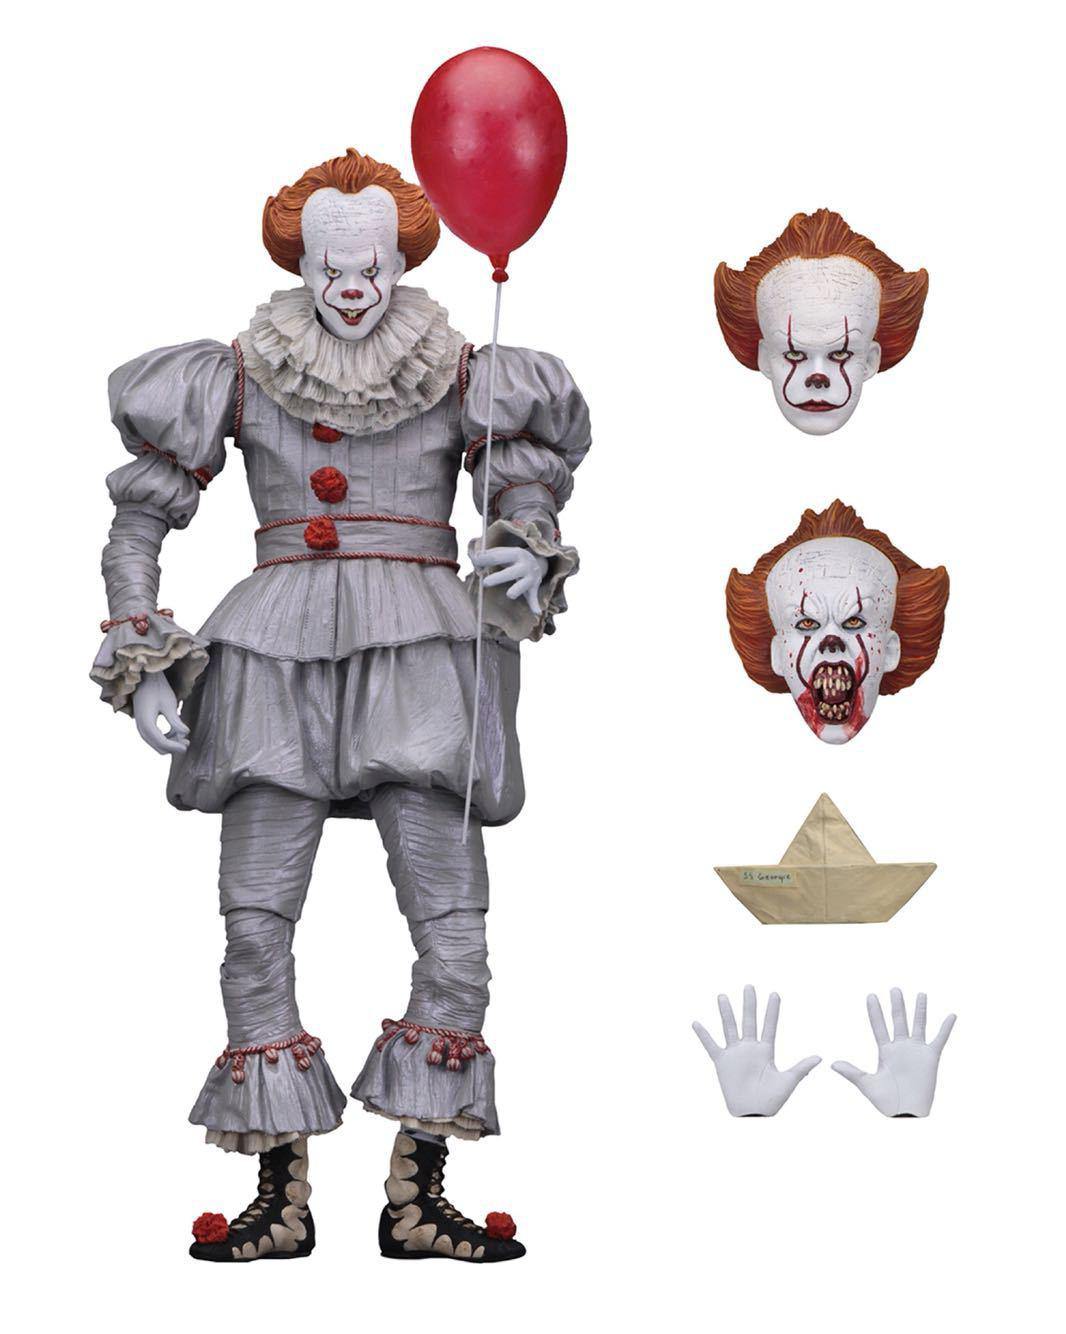 NECA original king Stephen's penywise clown BJD Action Figure Doll 18cm